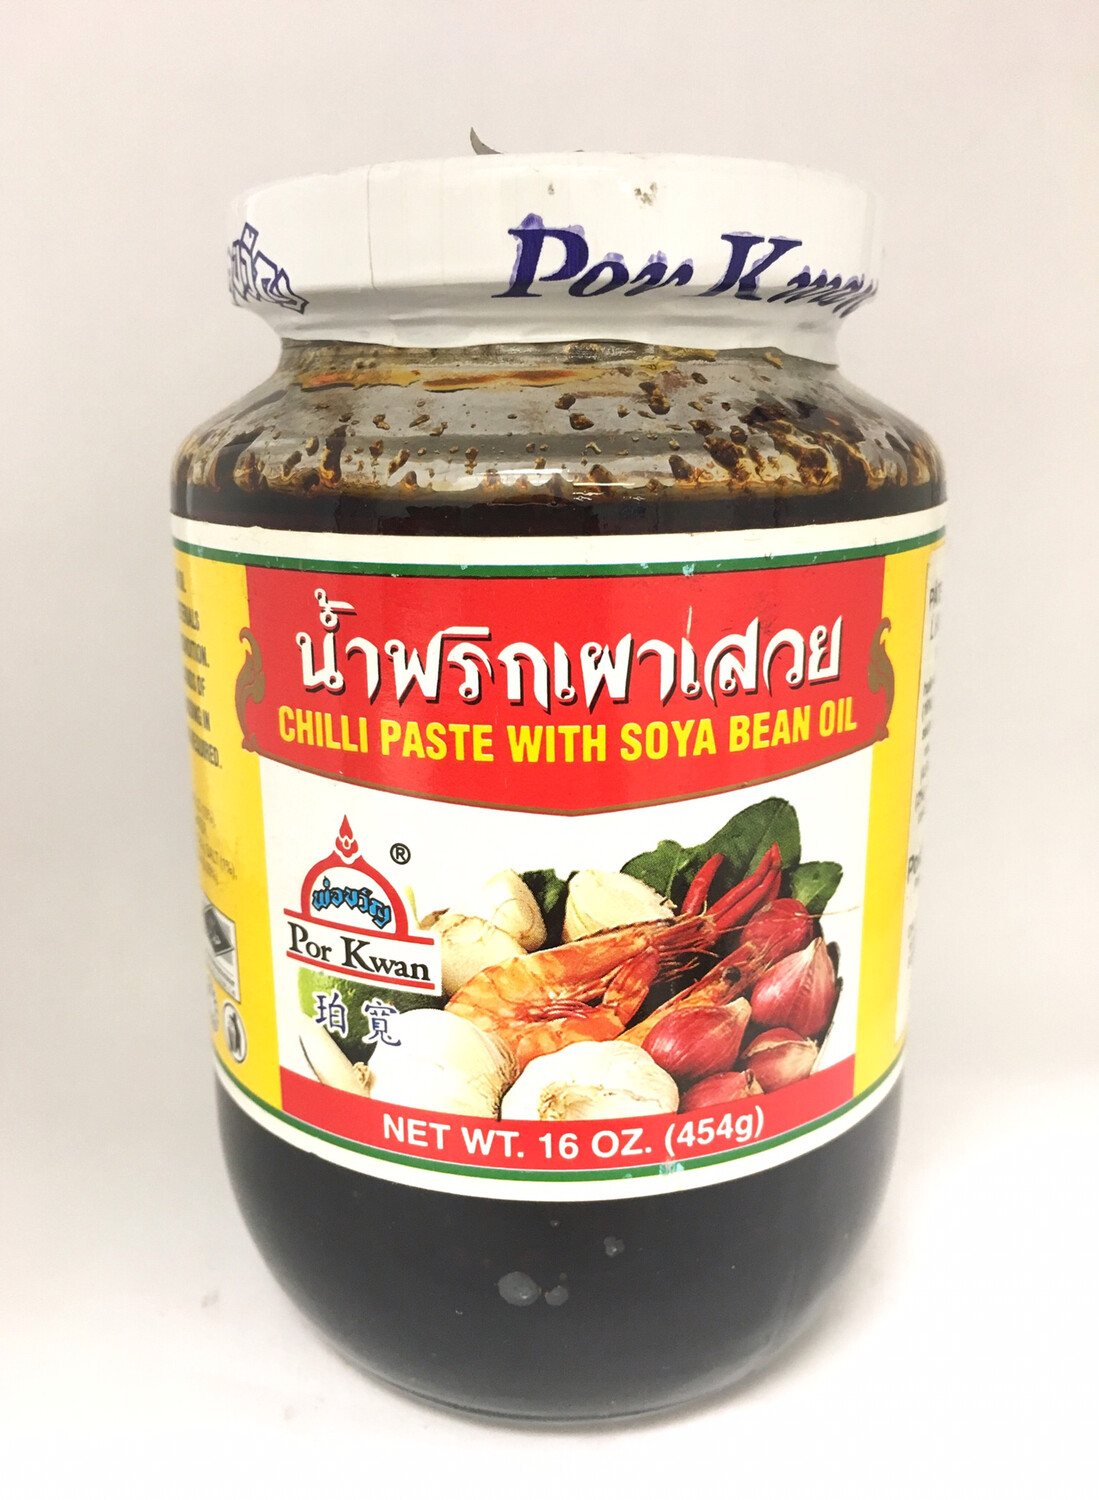 POKWAN CHILI PASTE WITH SOYA BEAN OIL 24X454G